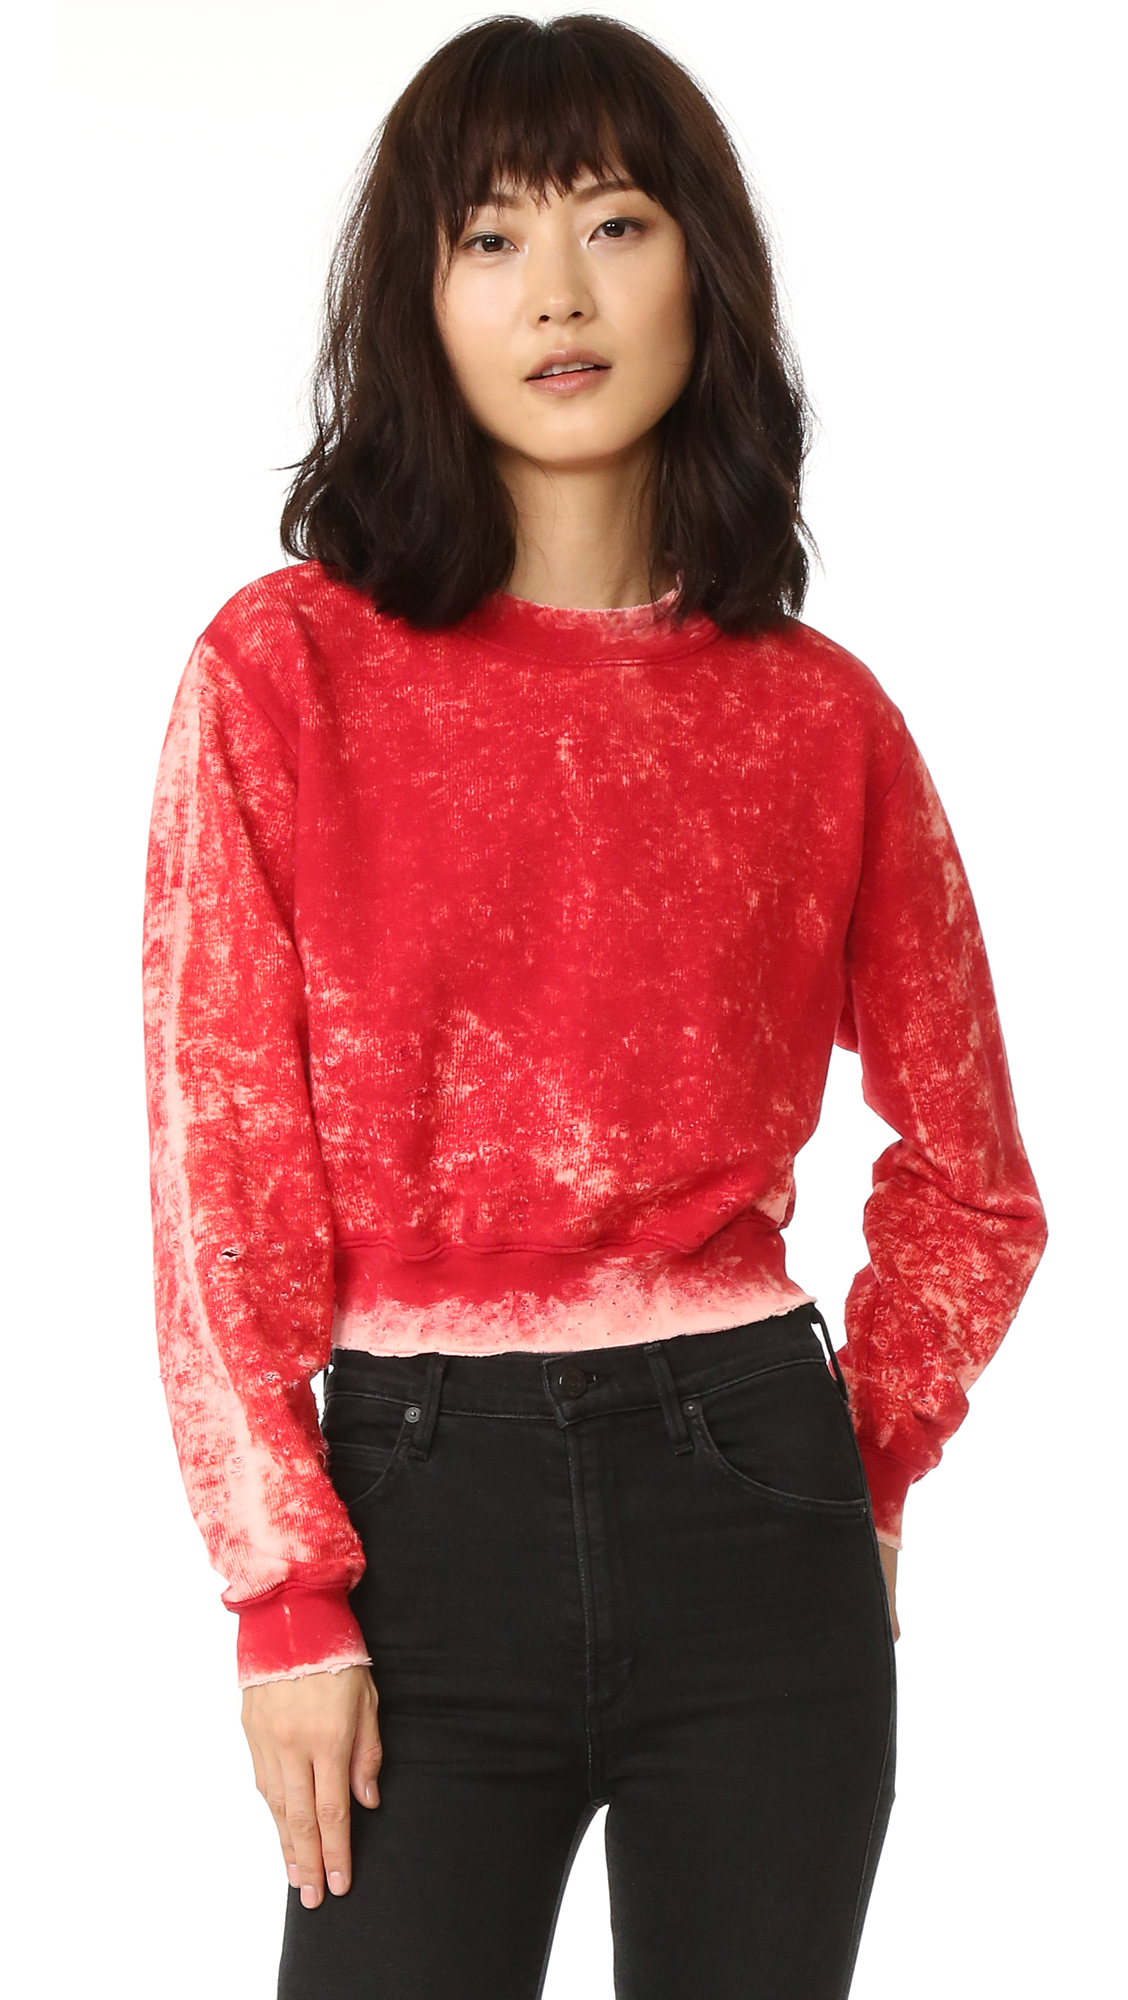 Fading and distressing gives this Cotton Citizen sweatshirt a vintage feel. Crew neckline. Long sleeves. Fabric: French terry. 100% cotton. Wash cold. Made in the USA. Measurements Length: 19in / 48cm, from shoulder Measurements from size S. Available